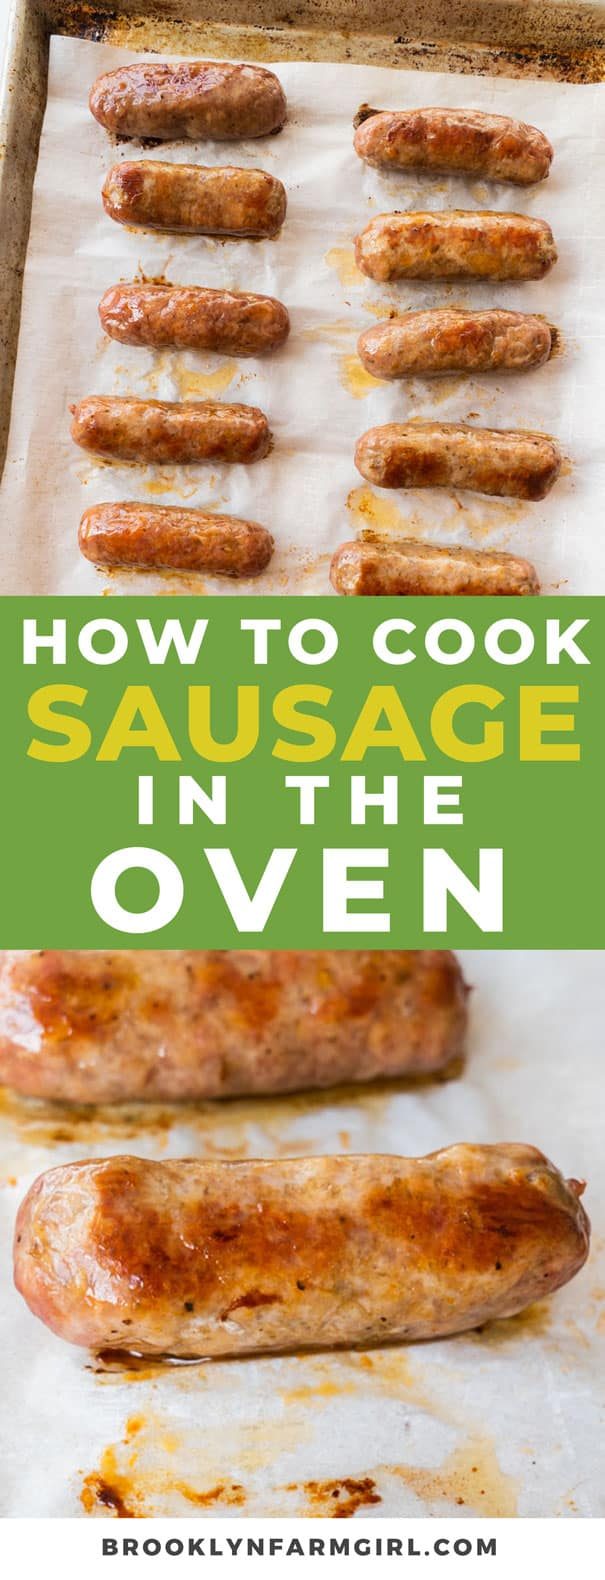 Easy steps on how to cook sausage in the oven. In just 30 minutes you'll have delicious oven baked sausage for dinner . This works for all sausage links and patties!